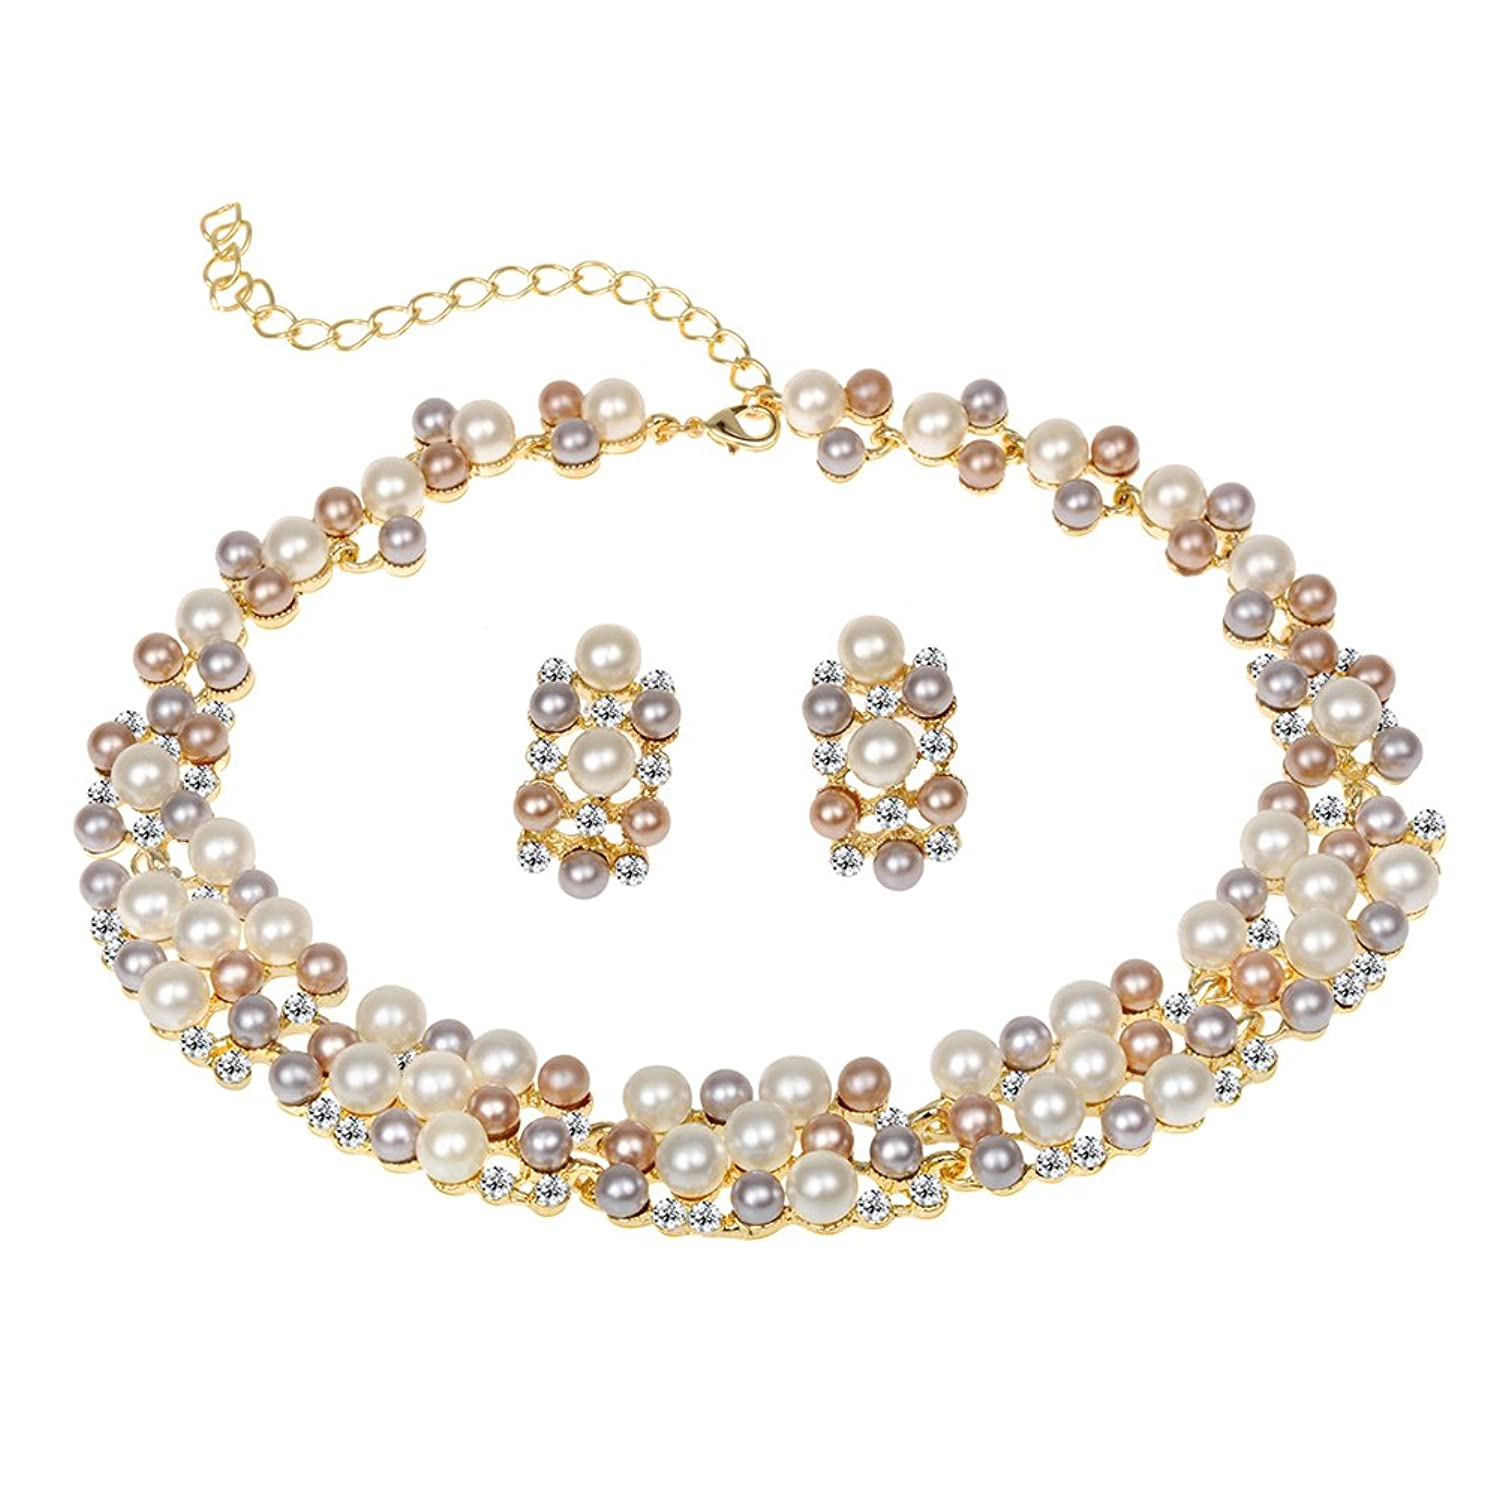 Amazon EVBEA Pearl Wedding Jewelry Set Affordable Gold Plated Faux Layered Statement Necklace And Earrings SetS17 Sets